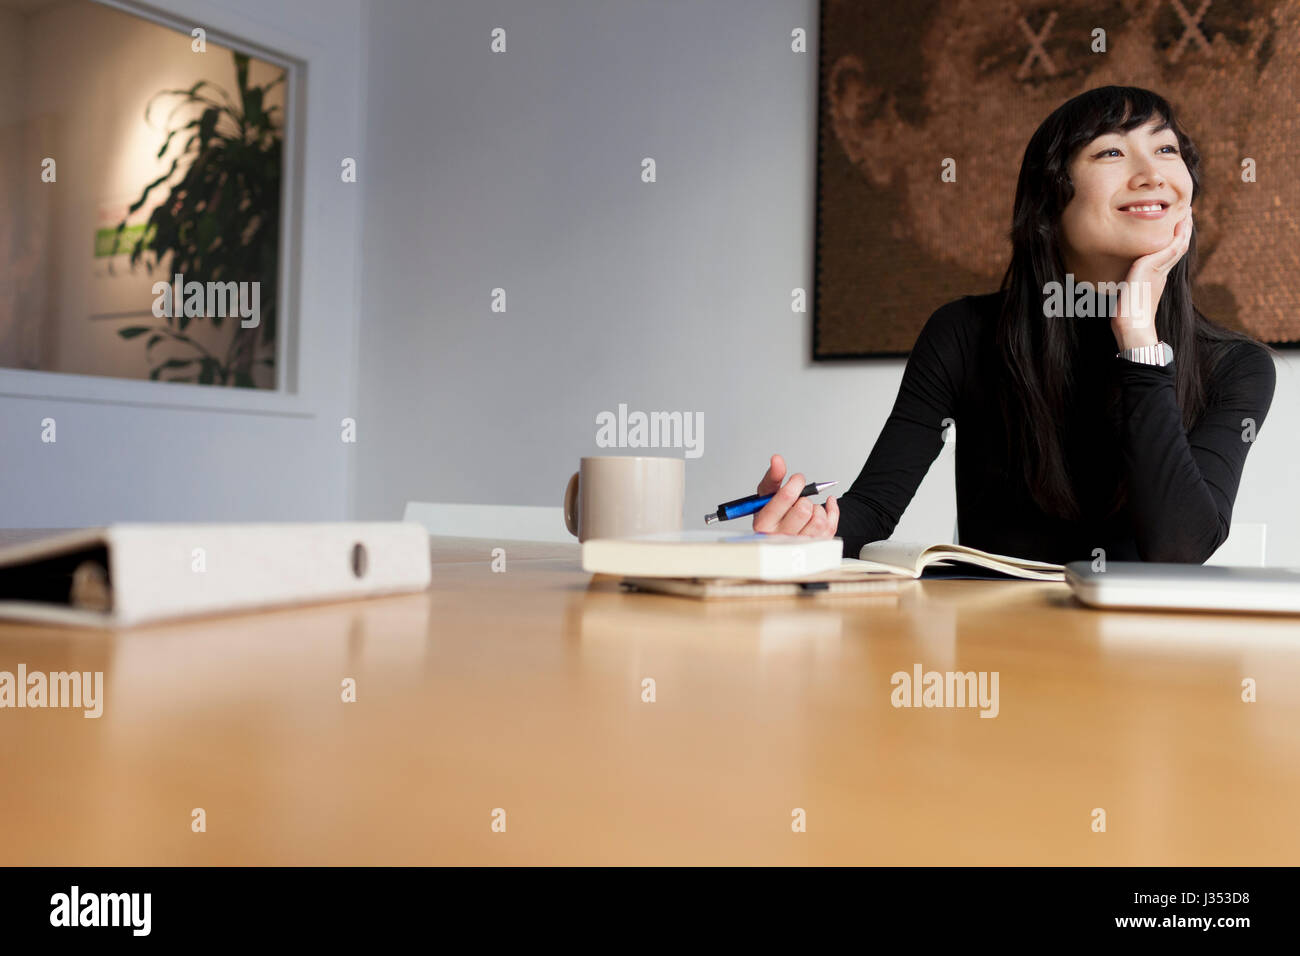 Portrait of a professional young businesswoman - Stock Image